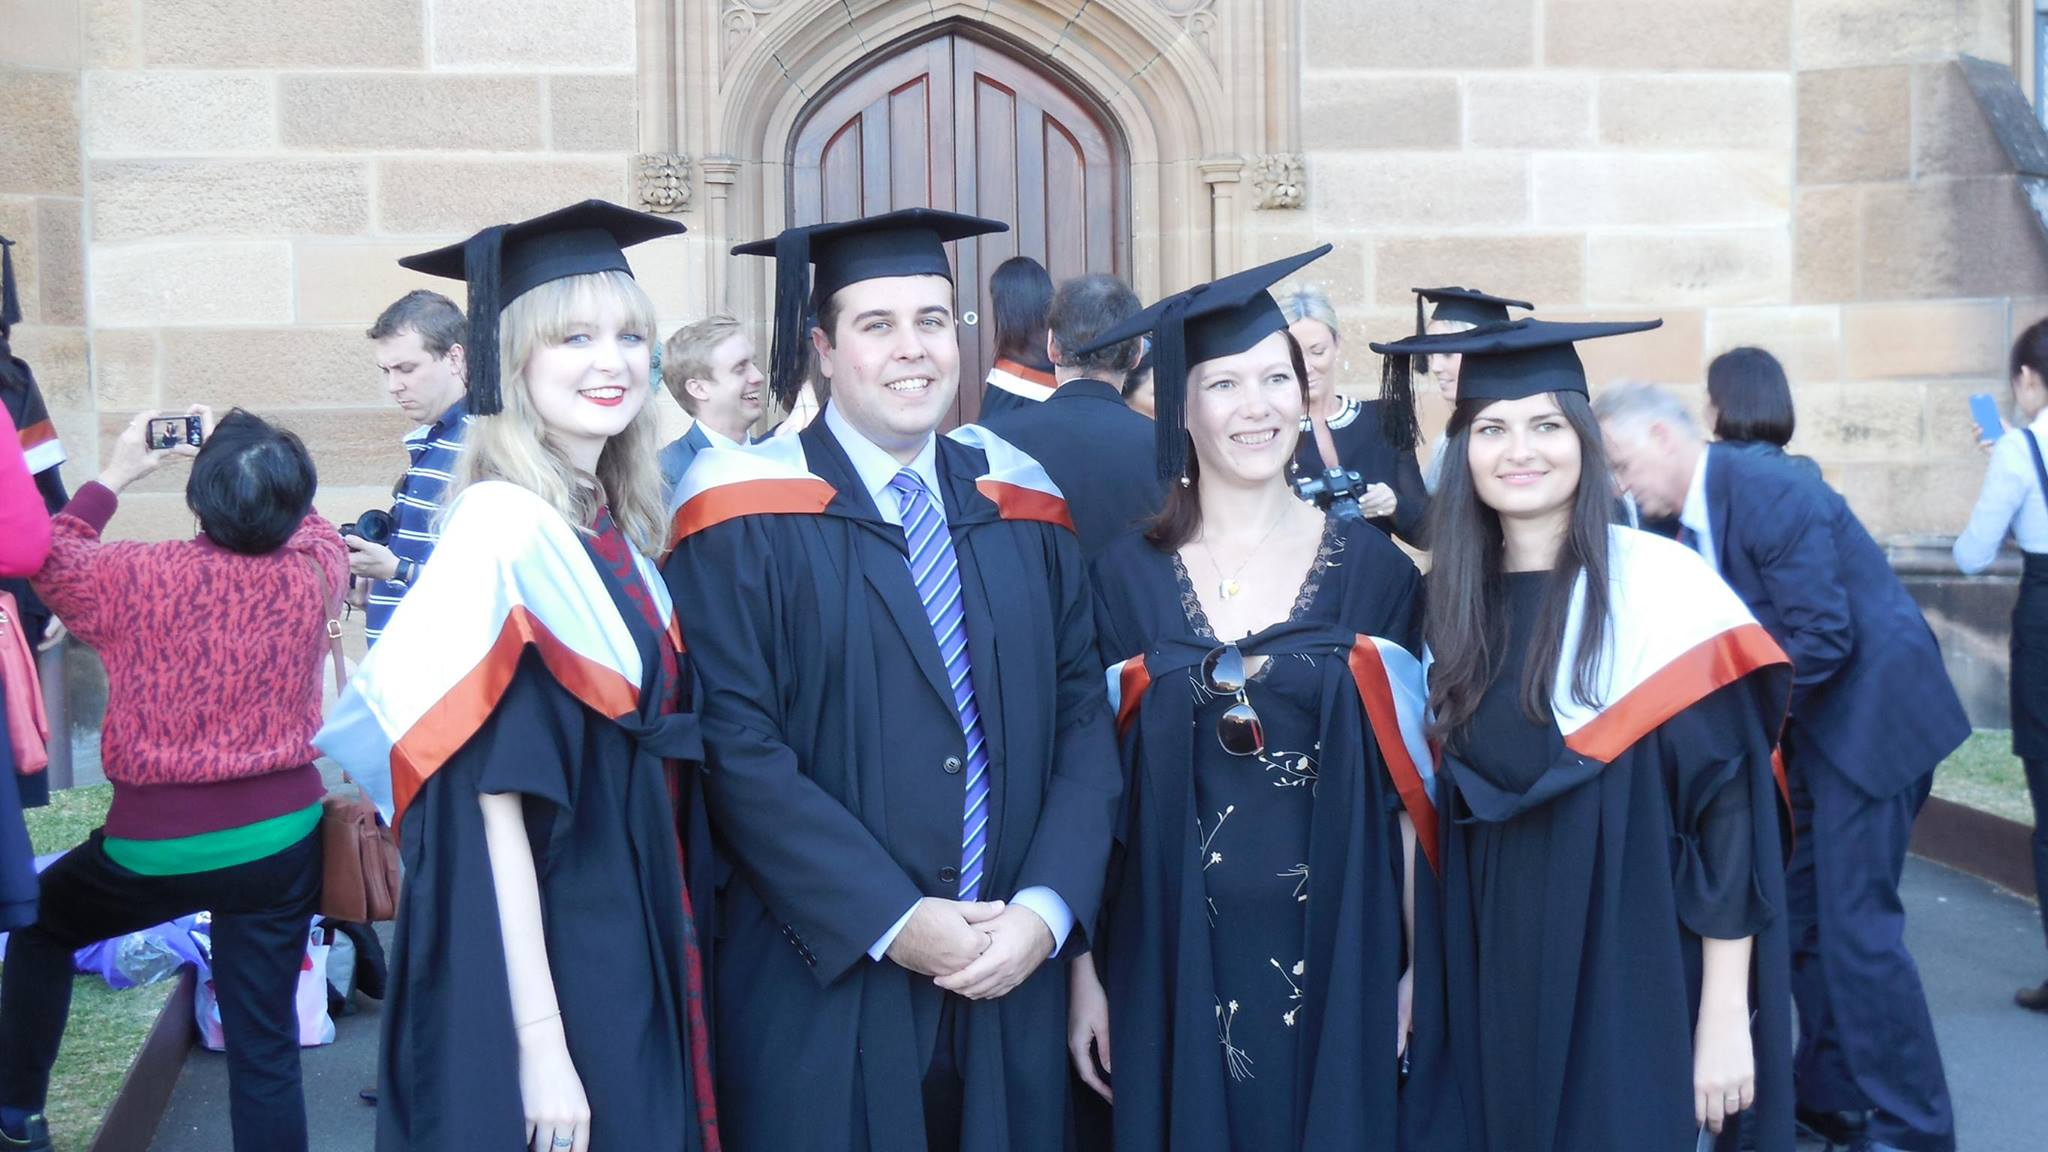 Mona Pradella and friends graduating from the University of Sydney